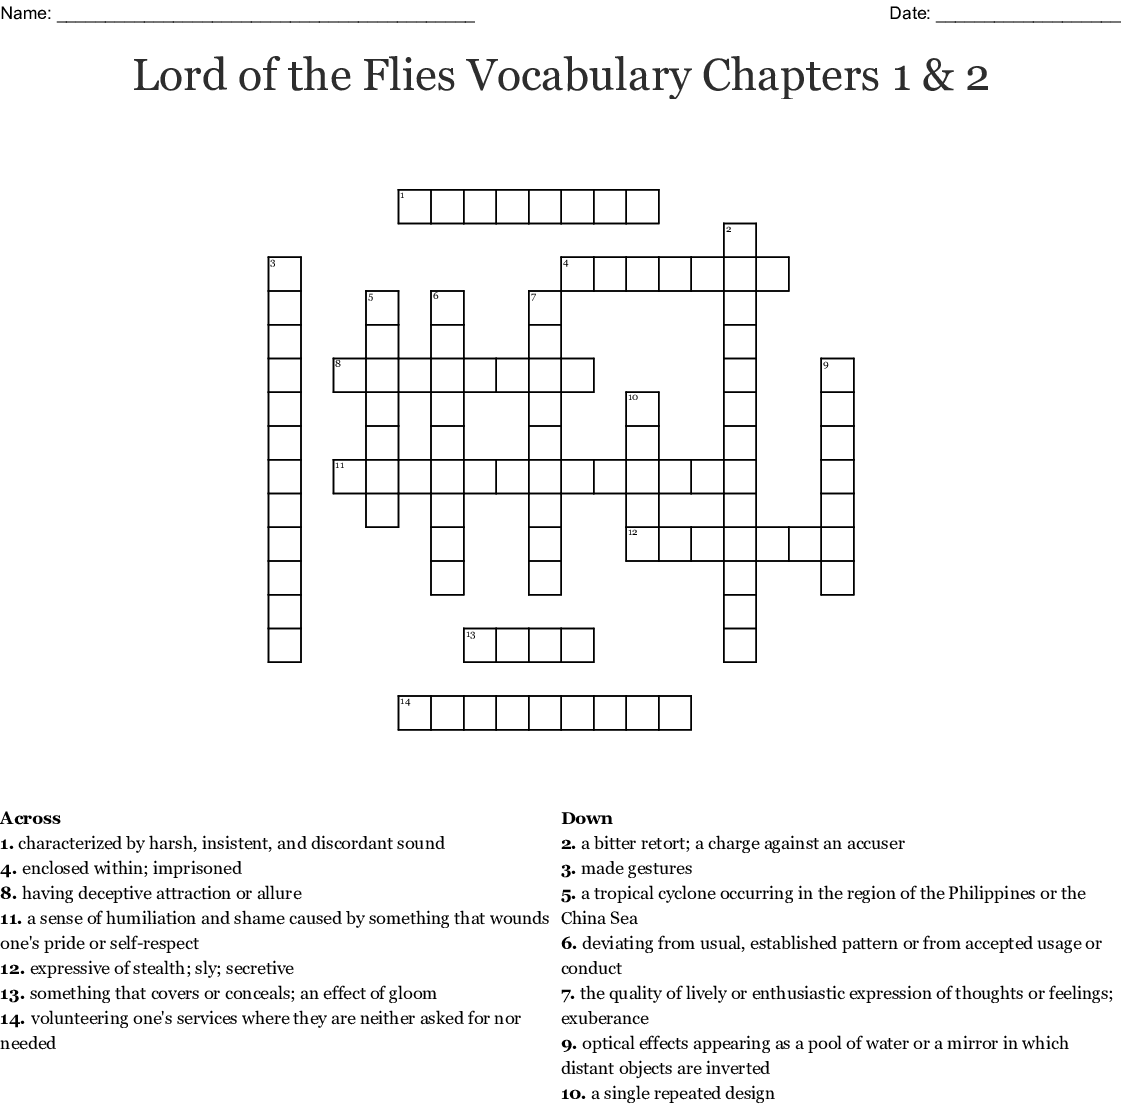 Lord Of The Flies Vocabulary Chapters 1 Amp 2 Crossword